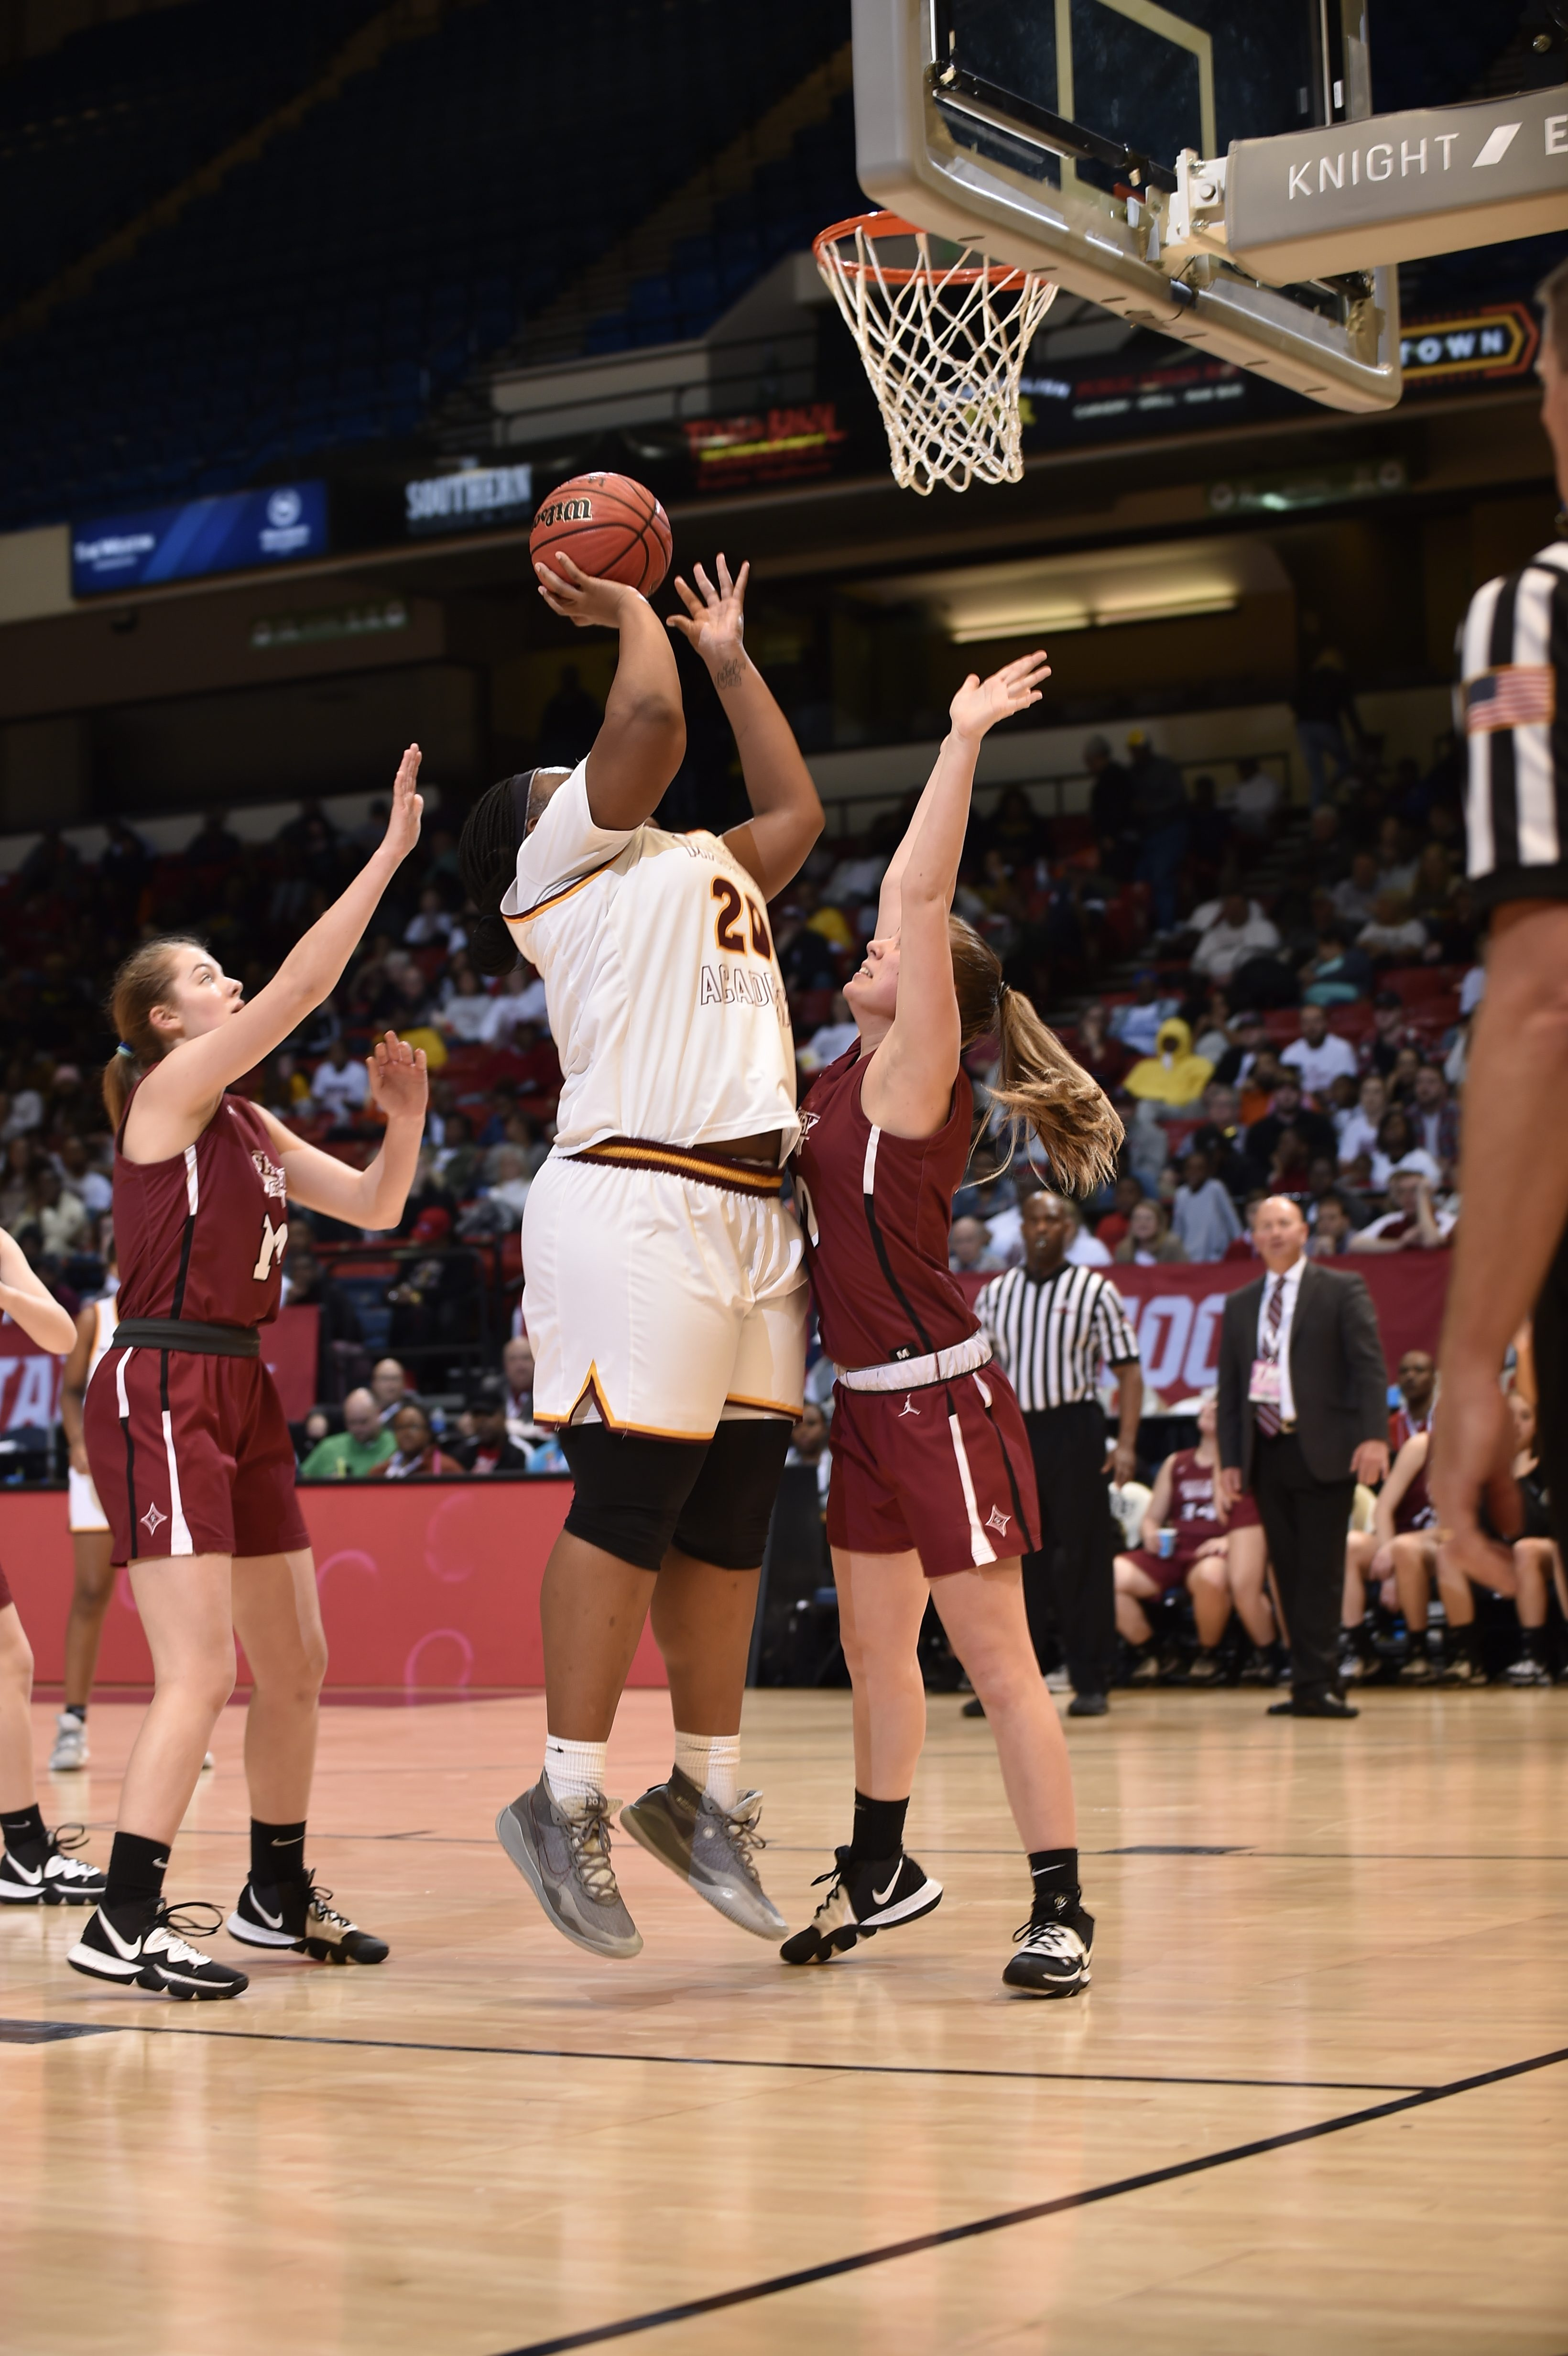 Class 5A Girls' Semifinals Madison Academy 65, Shelby County 40